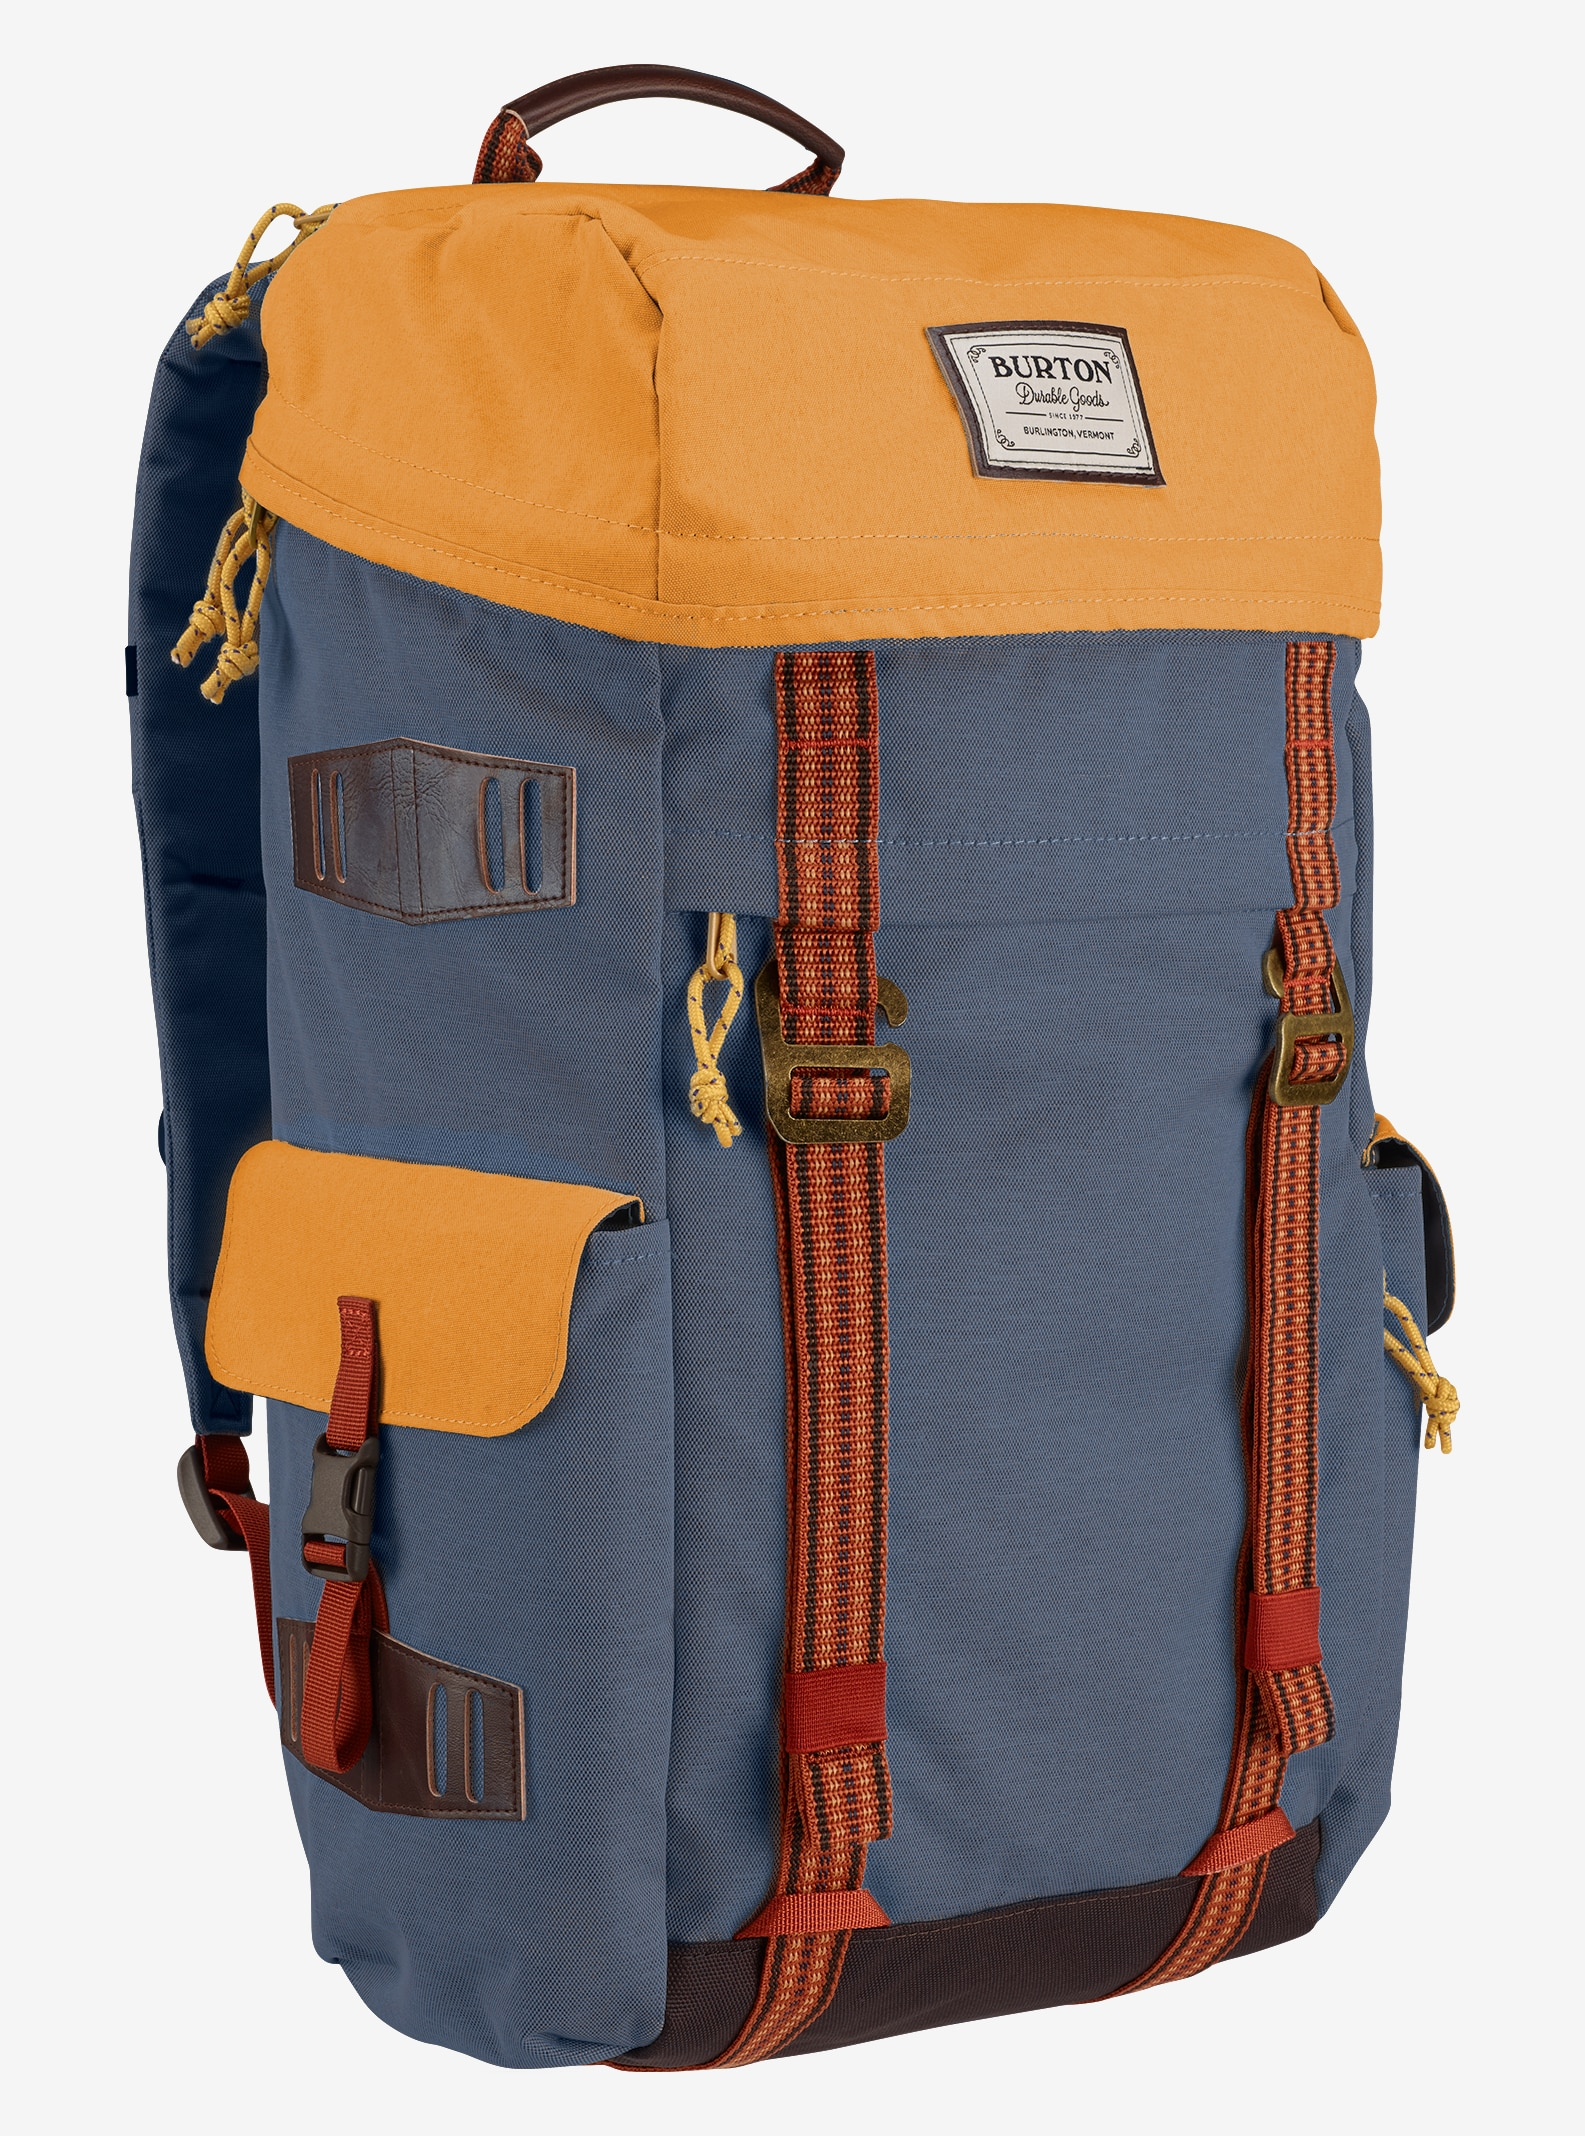 Burton Annex Backpack shown in Washed Blue